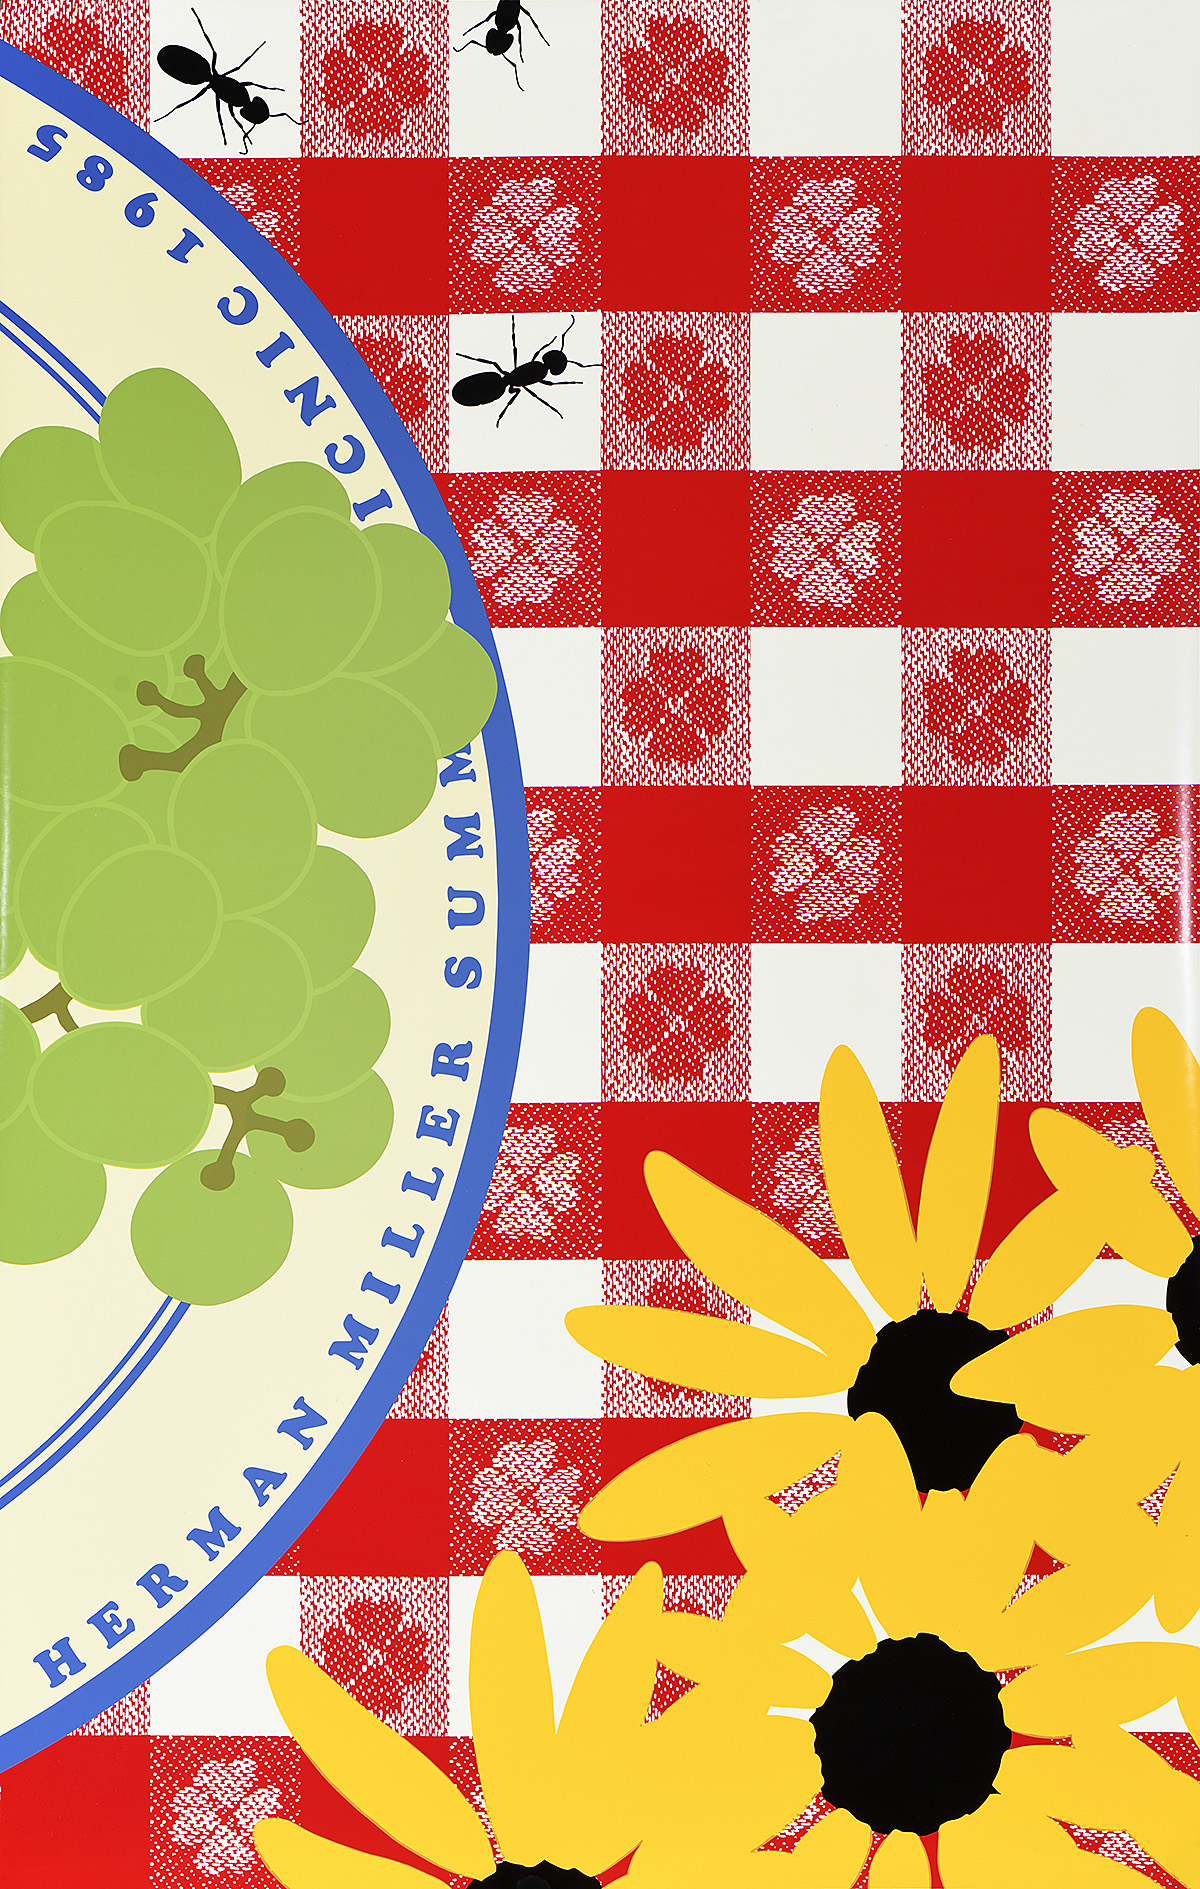 illustrational poster of a plate of grapes, bunch of sunflowers, and crawling ants on top a table with a plaid tablecloth